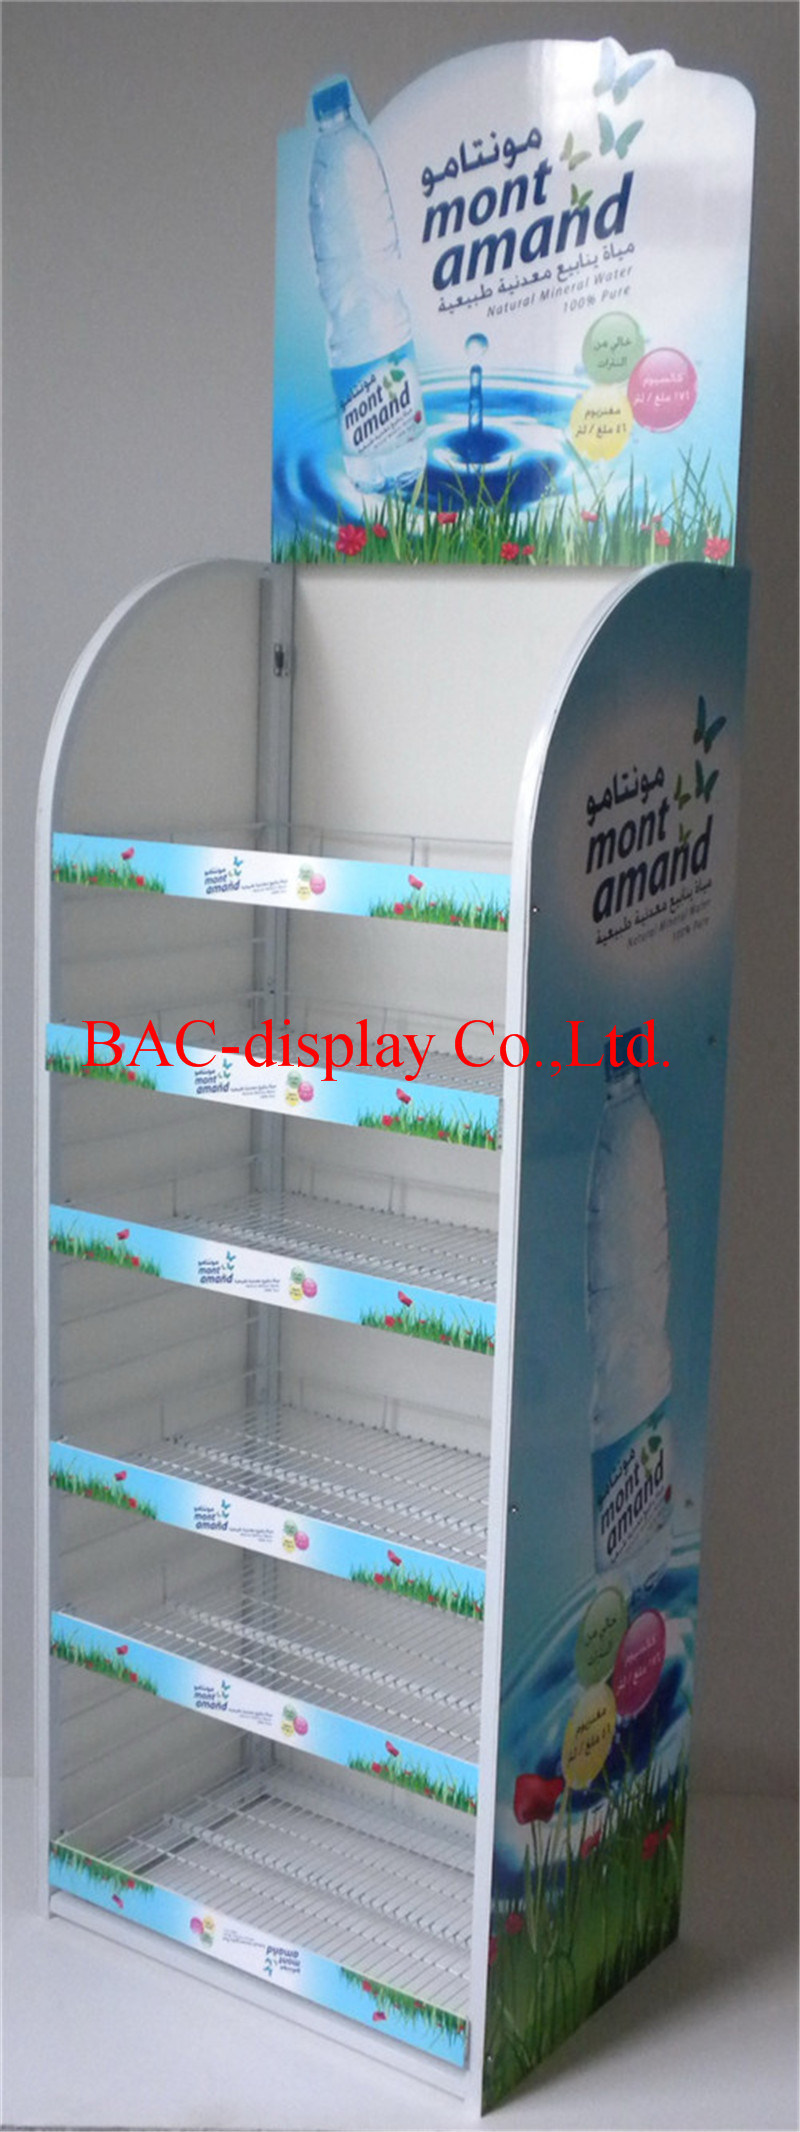 Retail Display Stand for Mineral Water Bottle Promotion